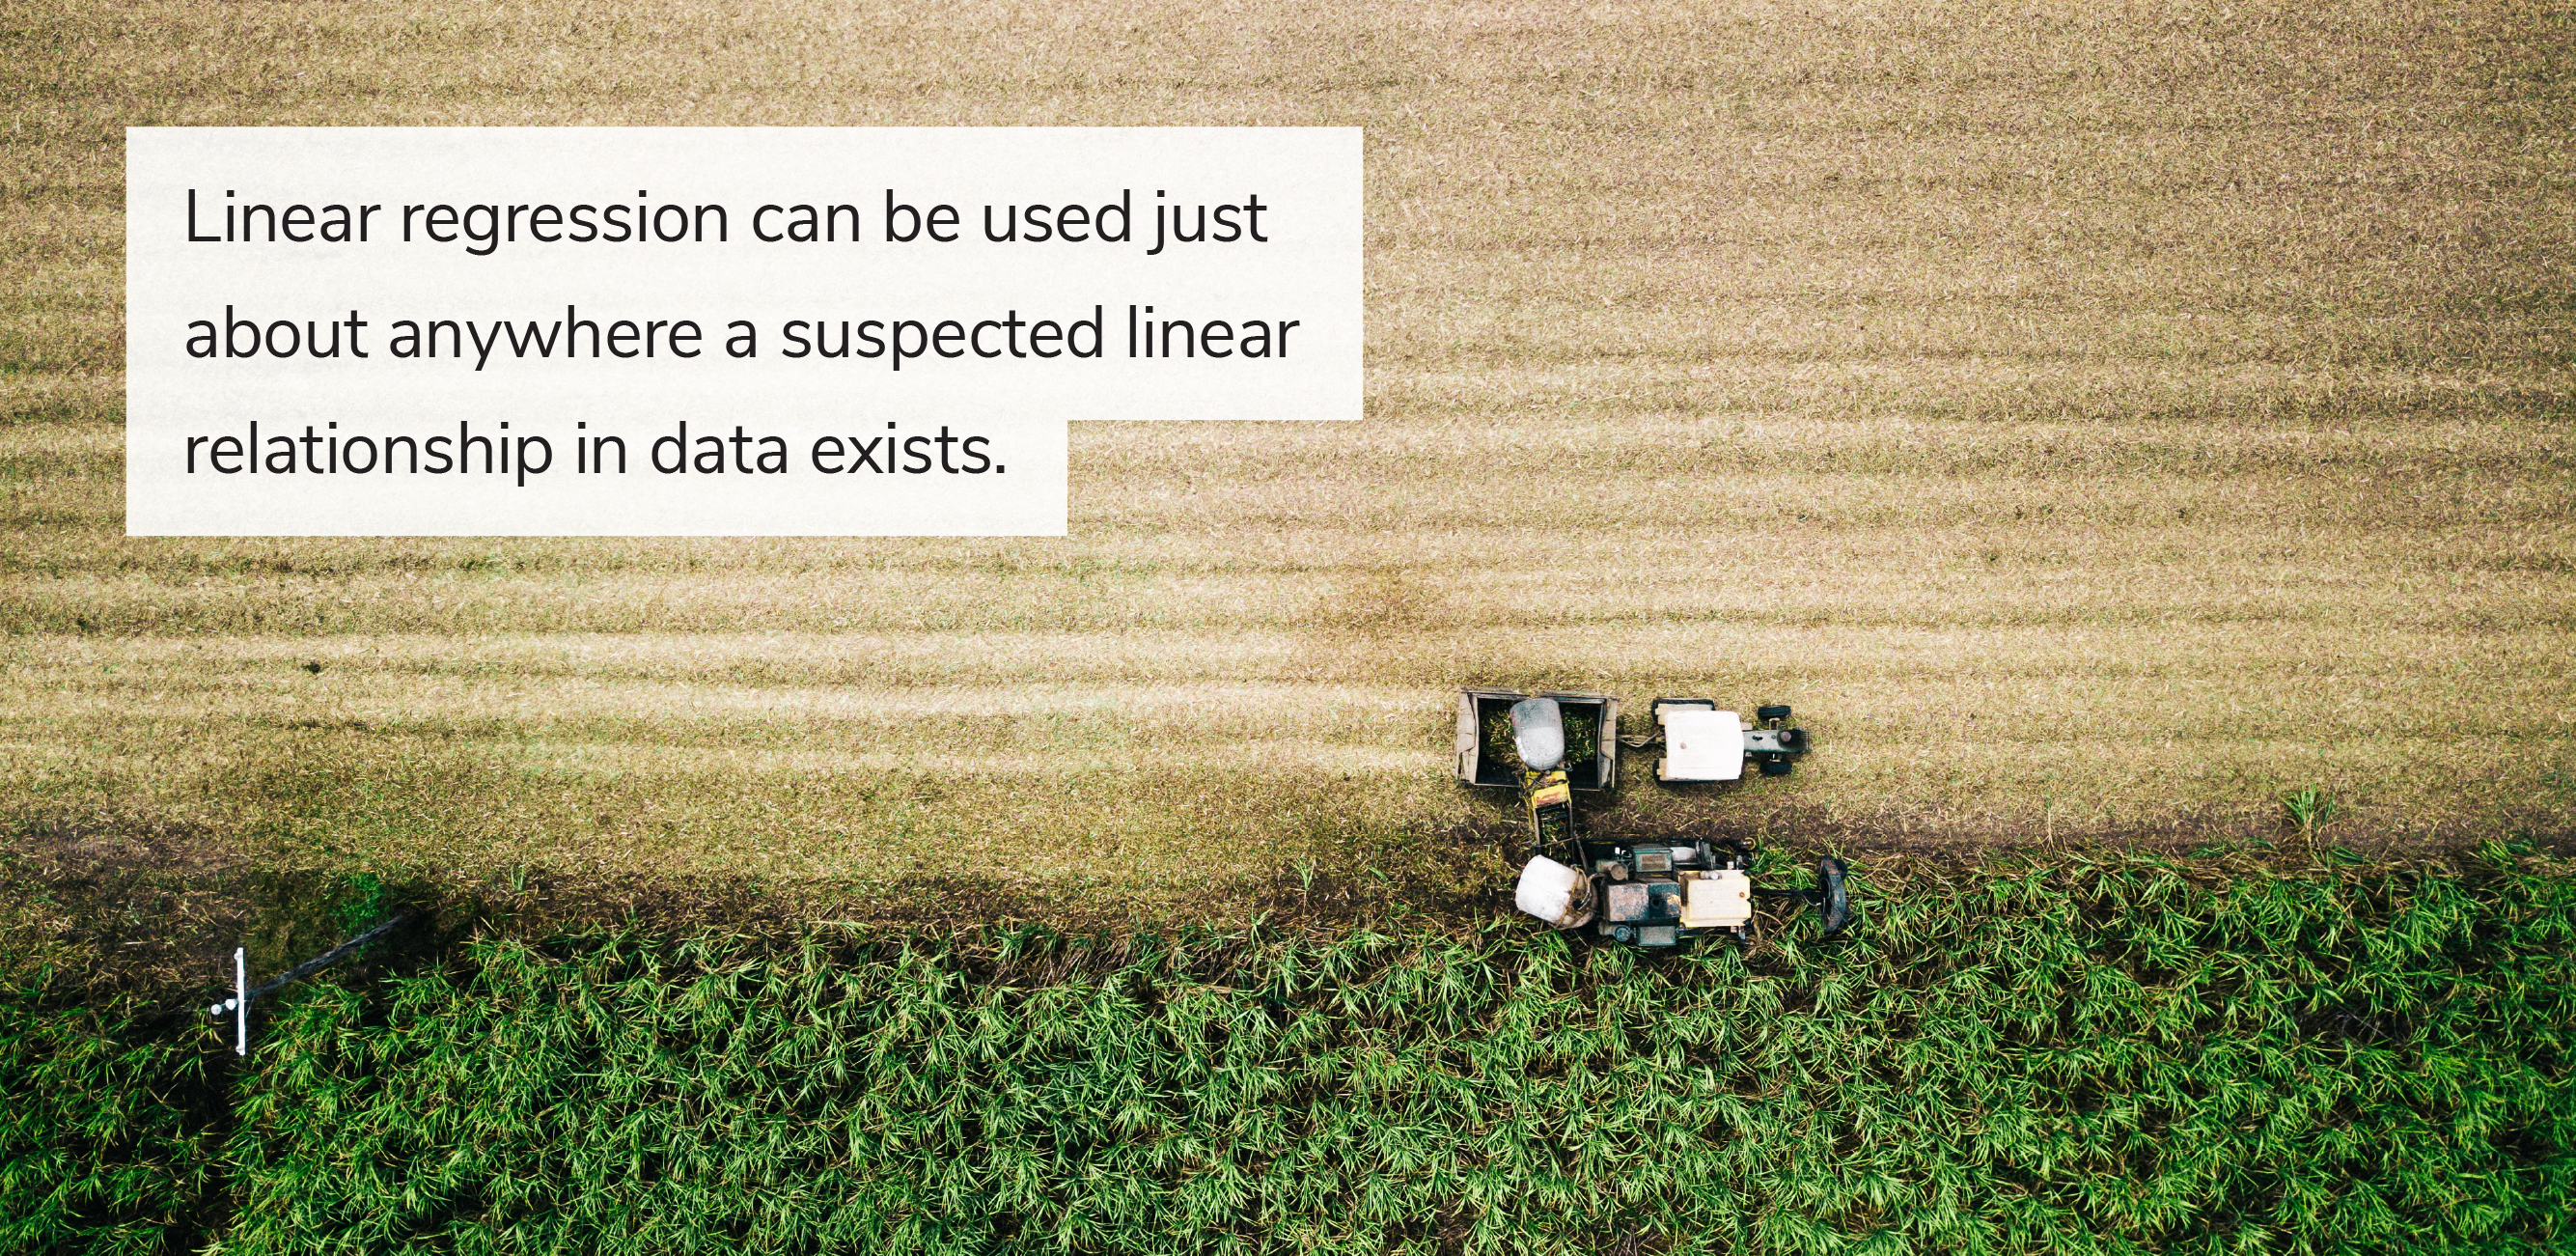 Linear regression text over an image of a crop field being harvested